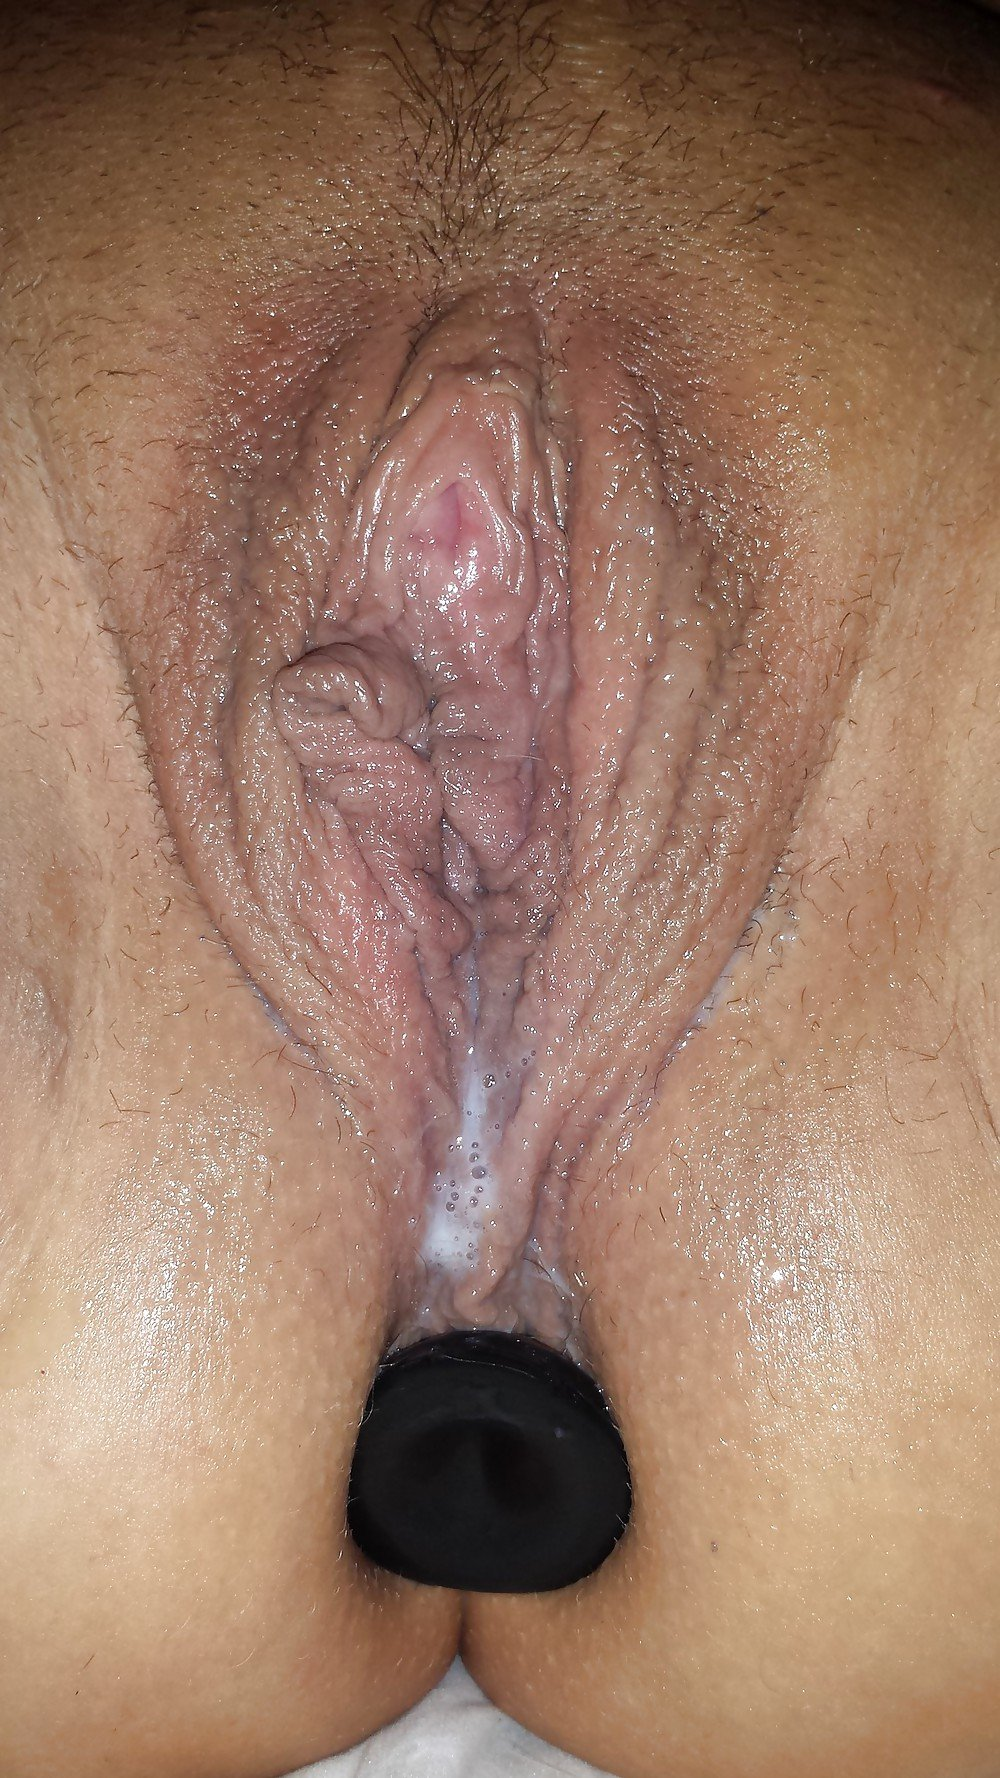 Nudist with wet pussy HARD ANAL DOGGY REAL MATURE MARRIED WIFE SPY PHONE Cheating Fucking MILF MOM VOYEUR HIDDEN AMATEUR HOMEMADE ASS Stepmom TEEN POV Couple Slut Peeping Cock Sexwife Cuckold housewife Webcam kitchen Panties Upskirt Lingerie stockings Fetish Sexwife MOMMY HOT